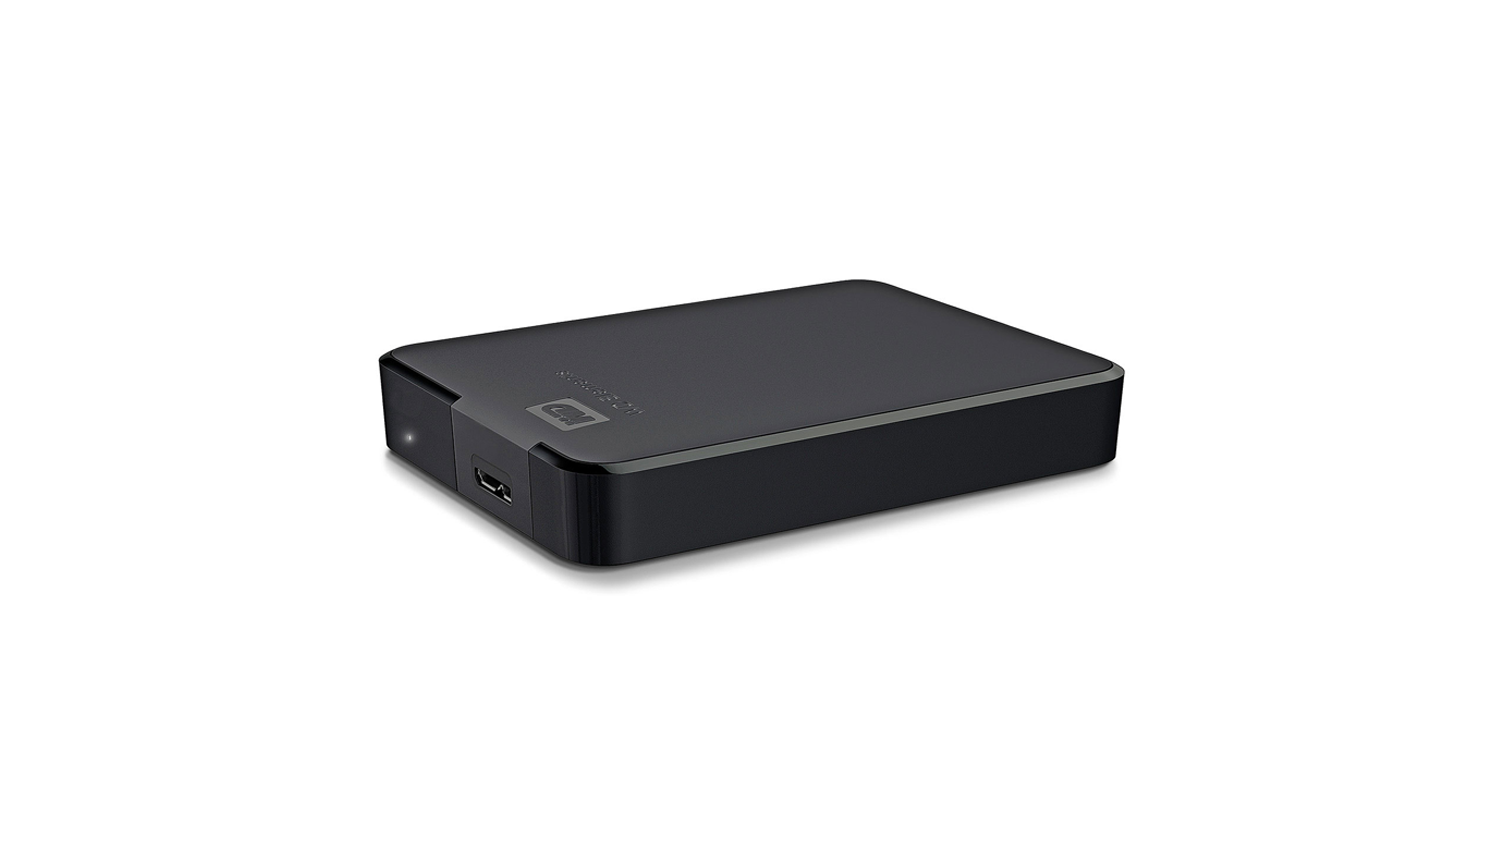 WD Elements USB 3.0 Portable Hard Drive - top side view